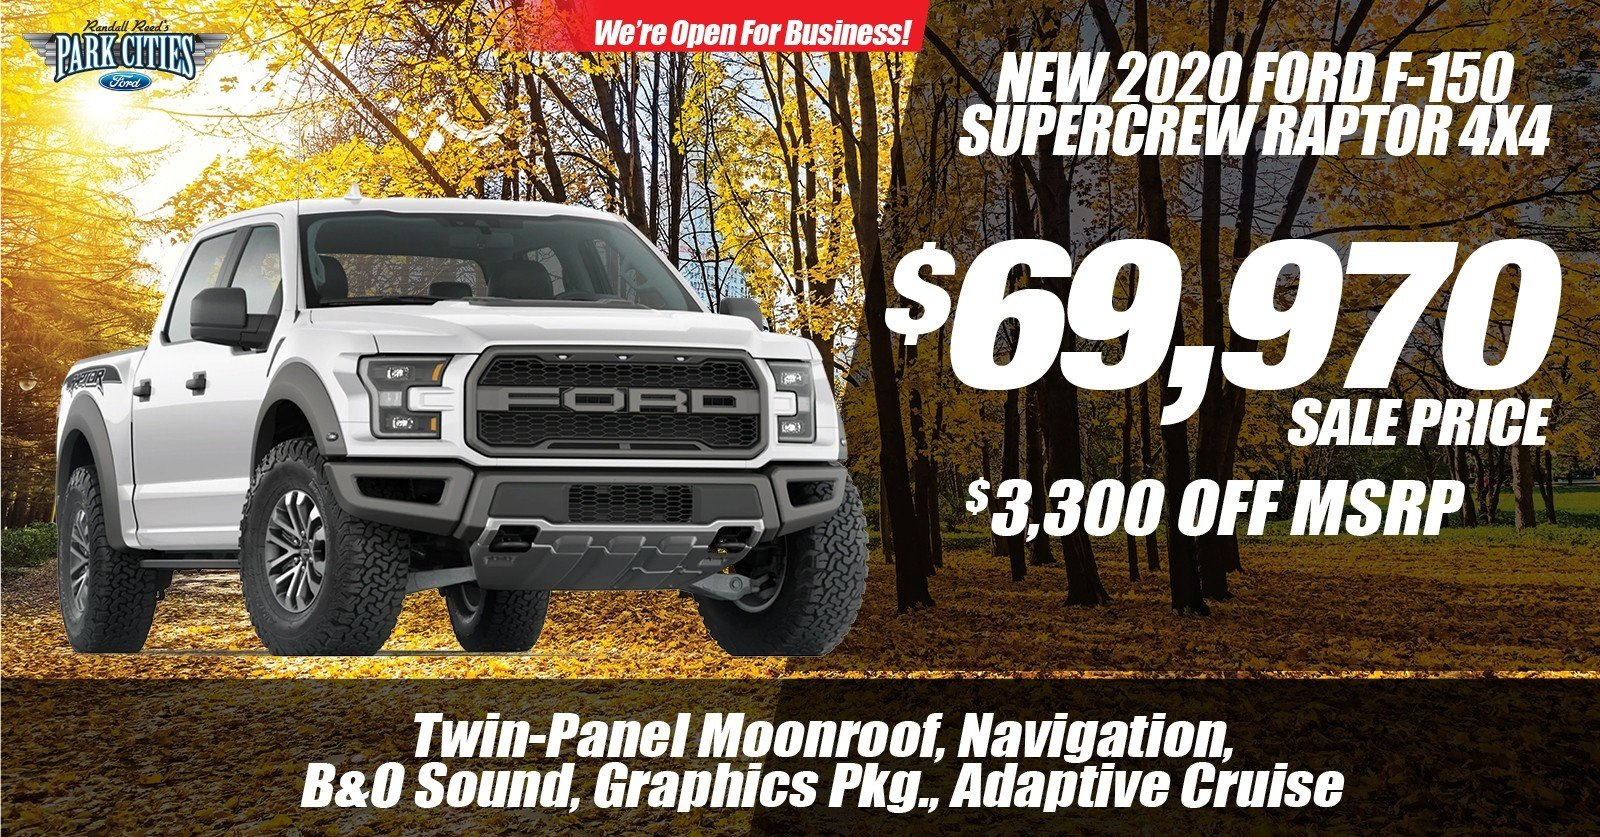 Special offer on 2020 Ford F-150 NEW 2020 FORD F-150 RAPTOR 4X4 SPECIAL OFFER